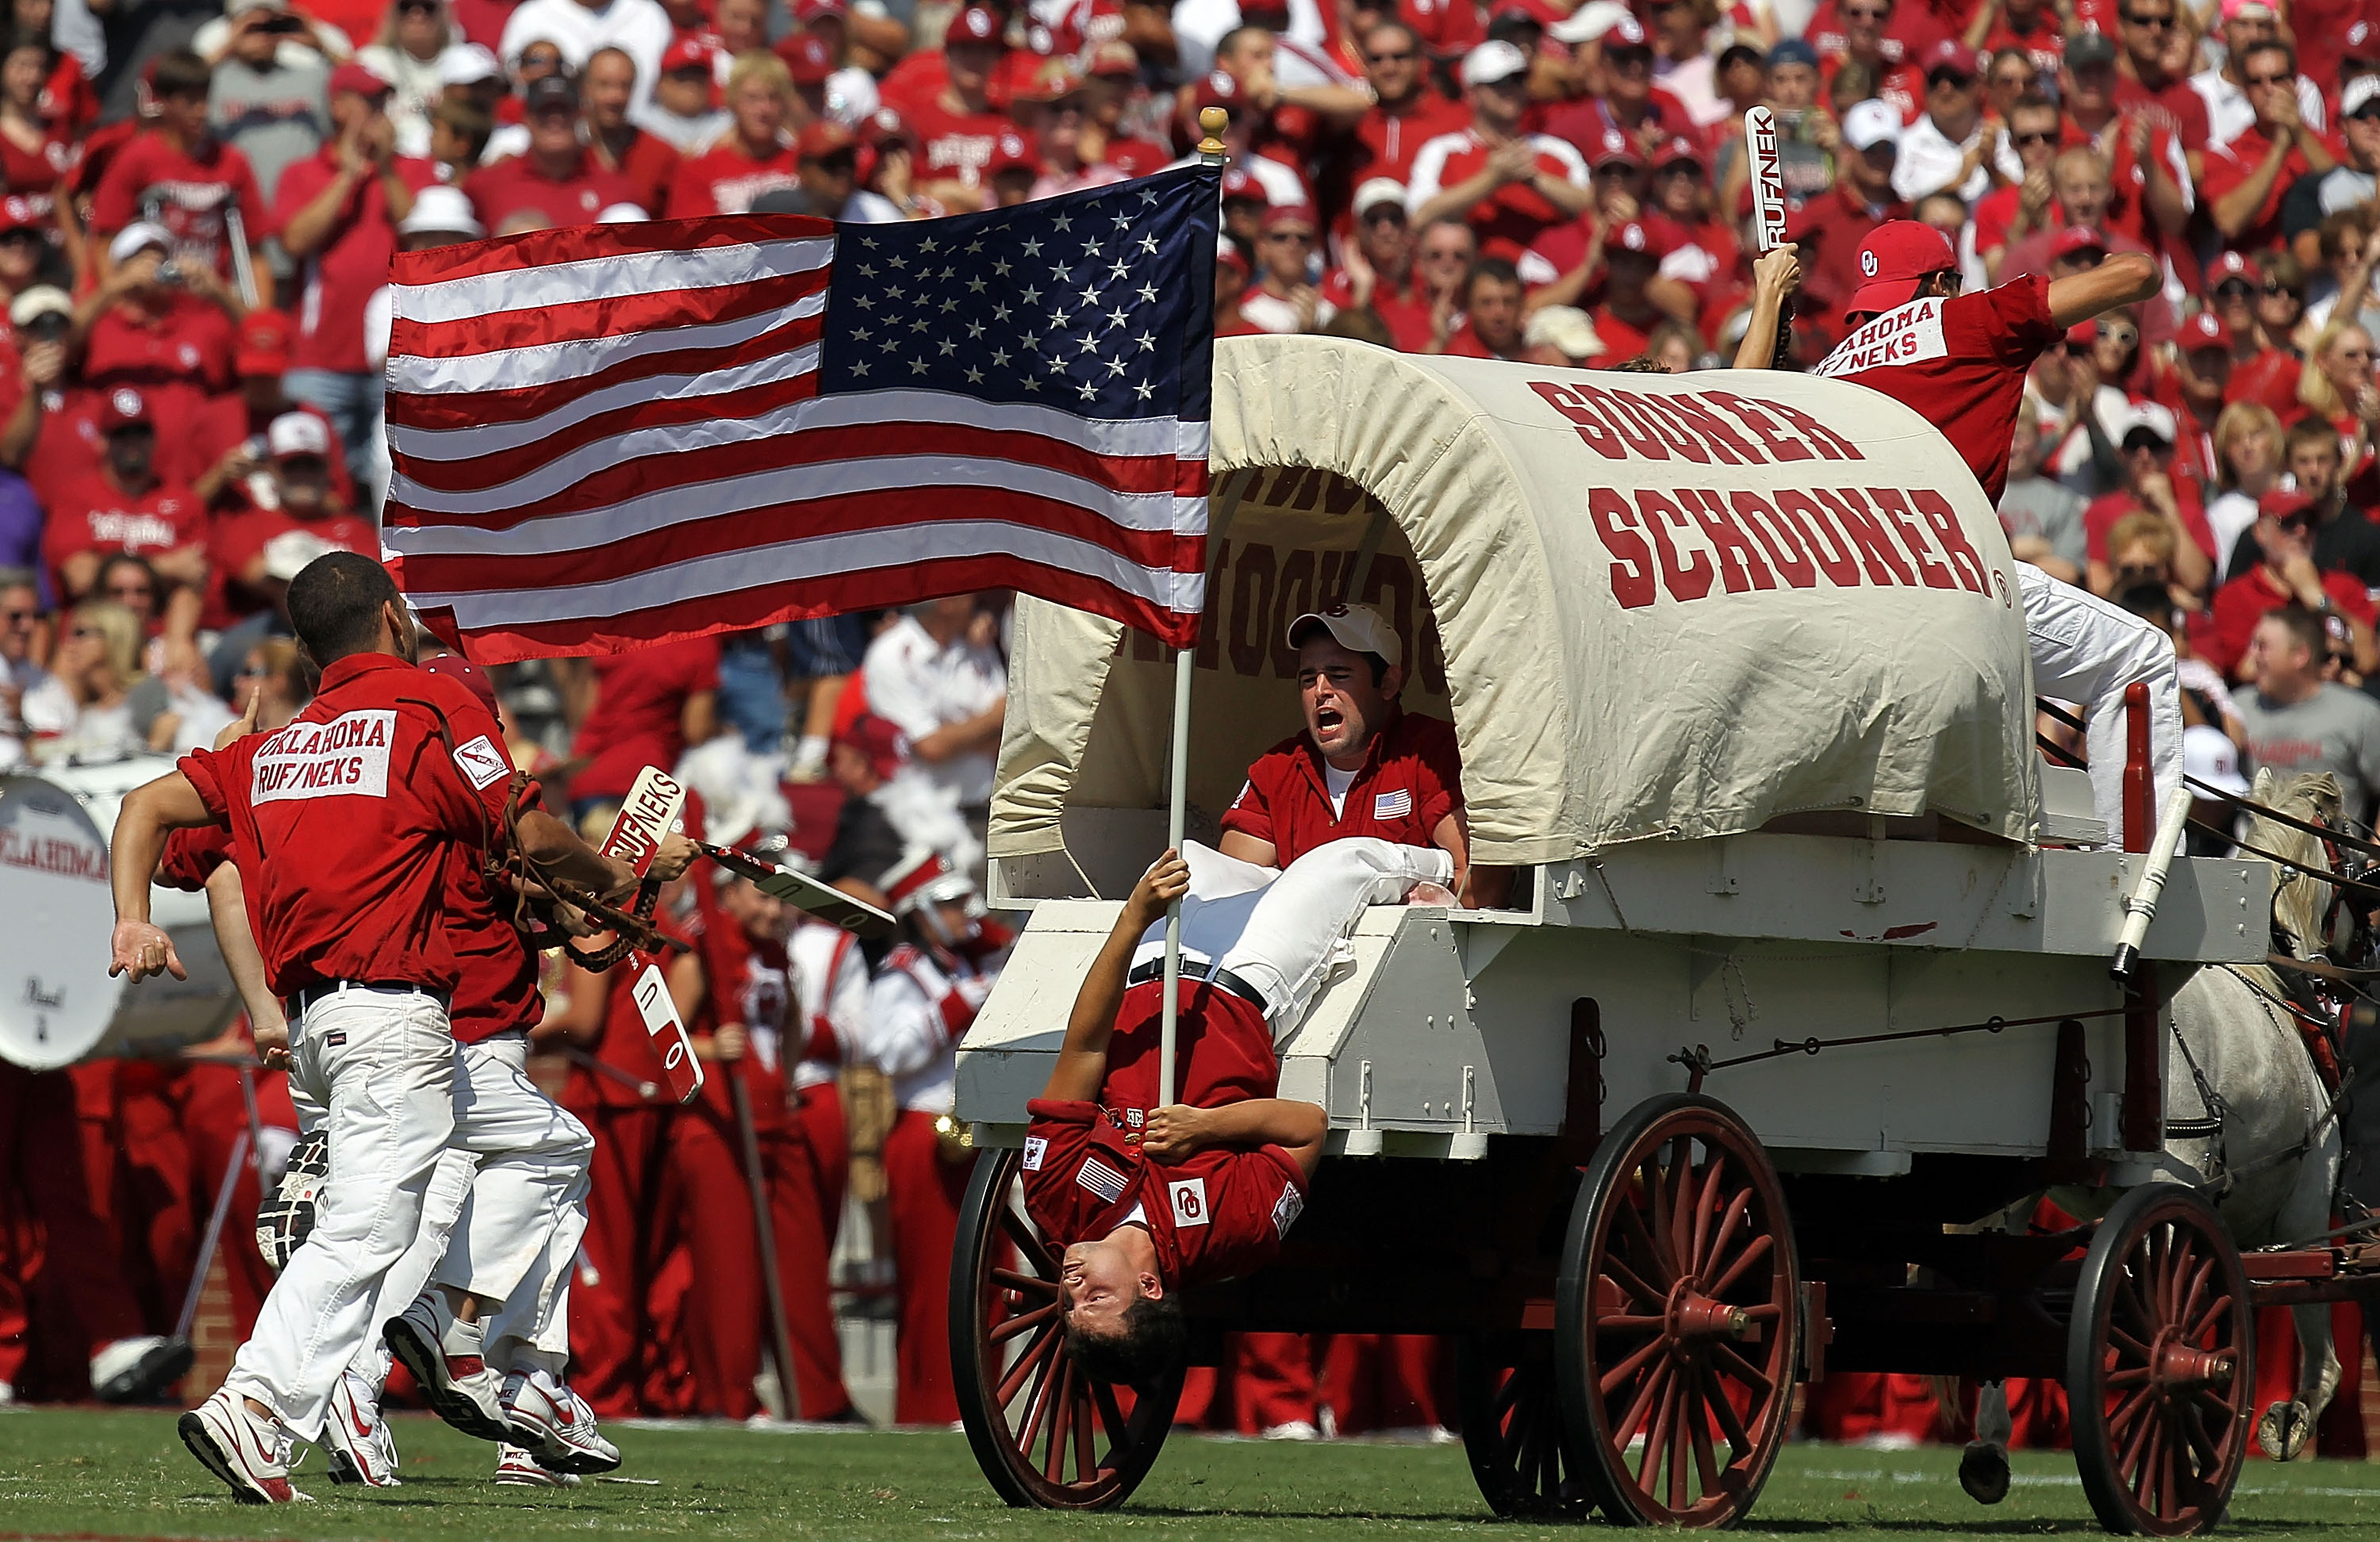 Loading up the wagons to play BSU